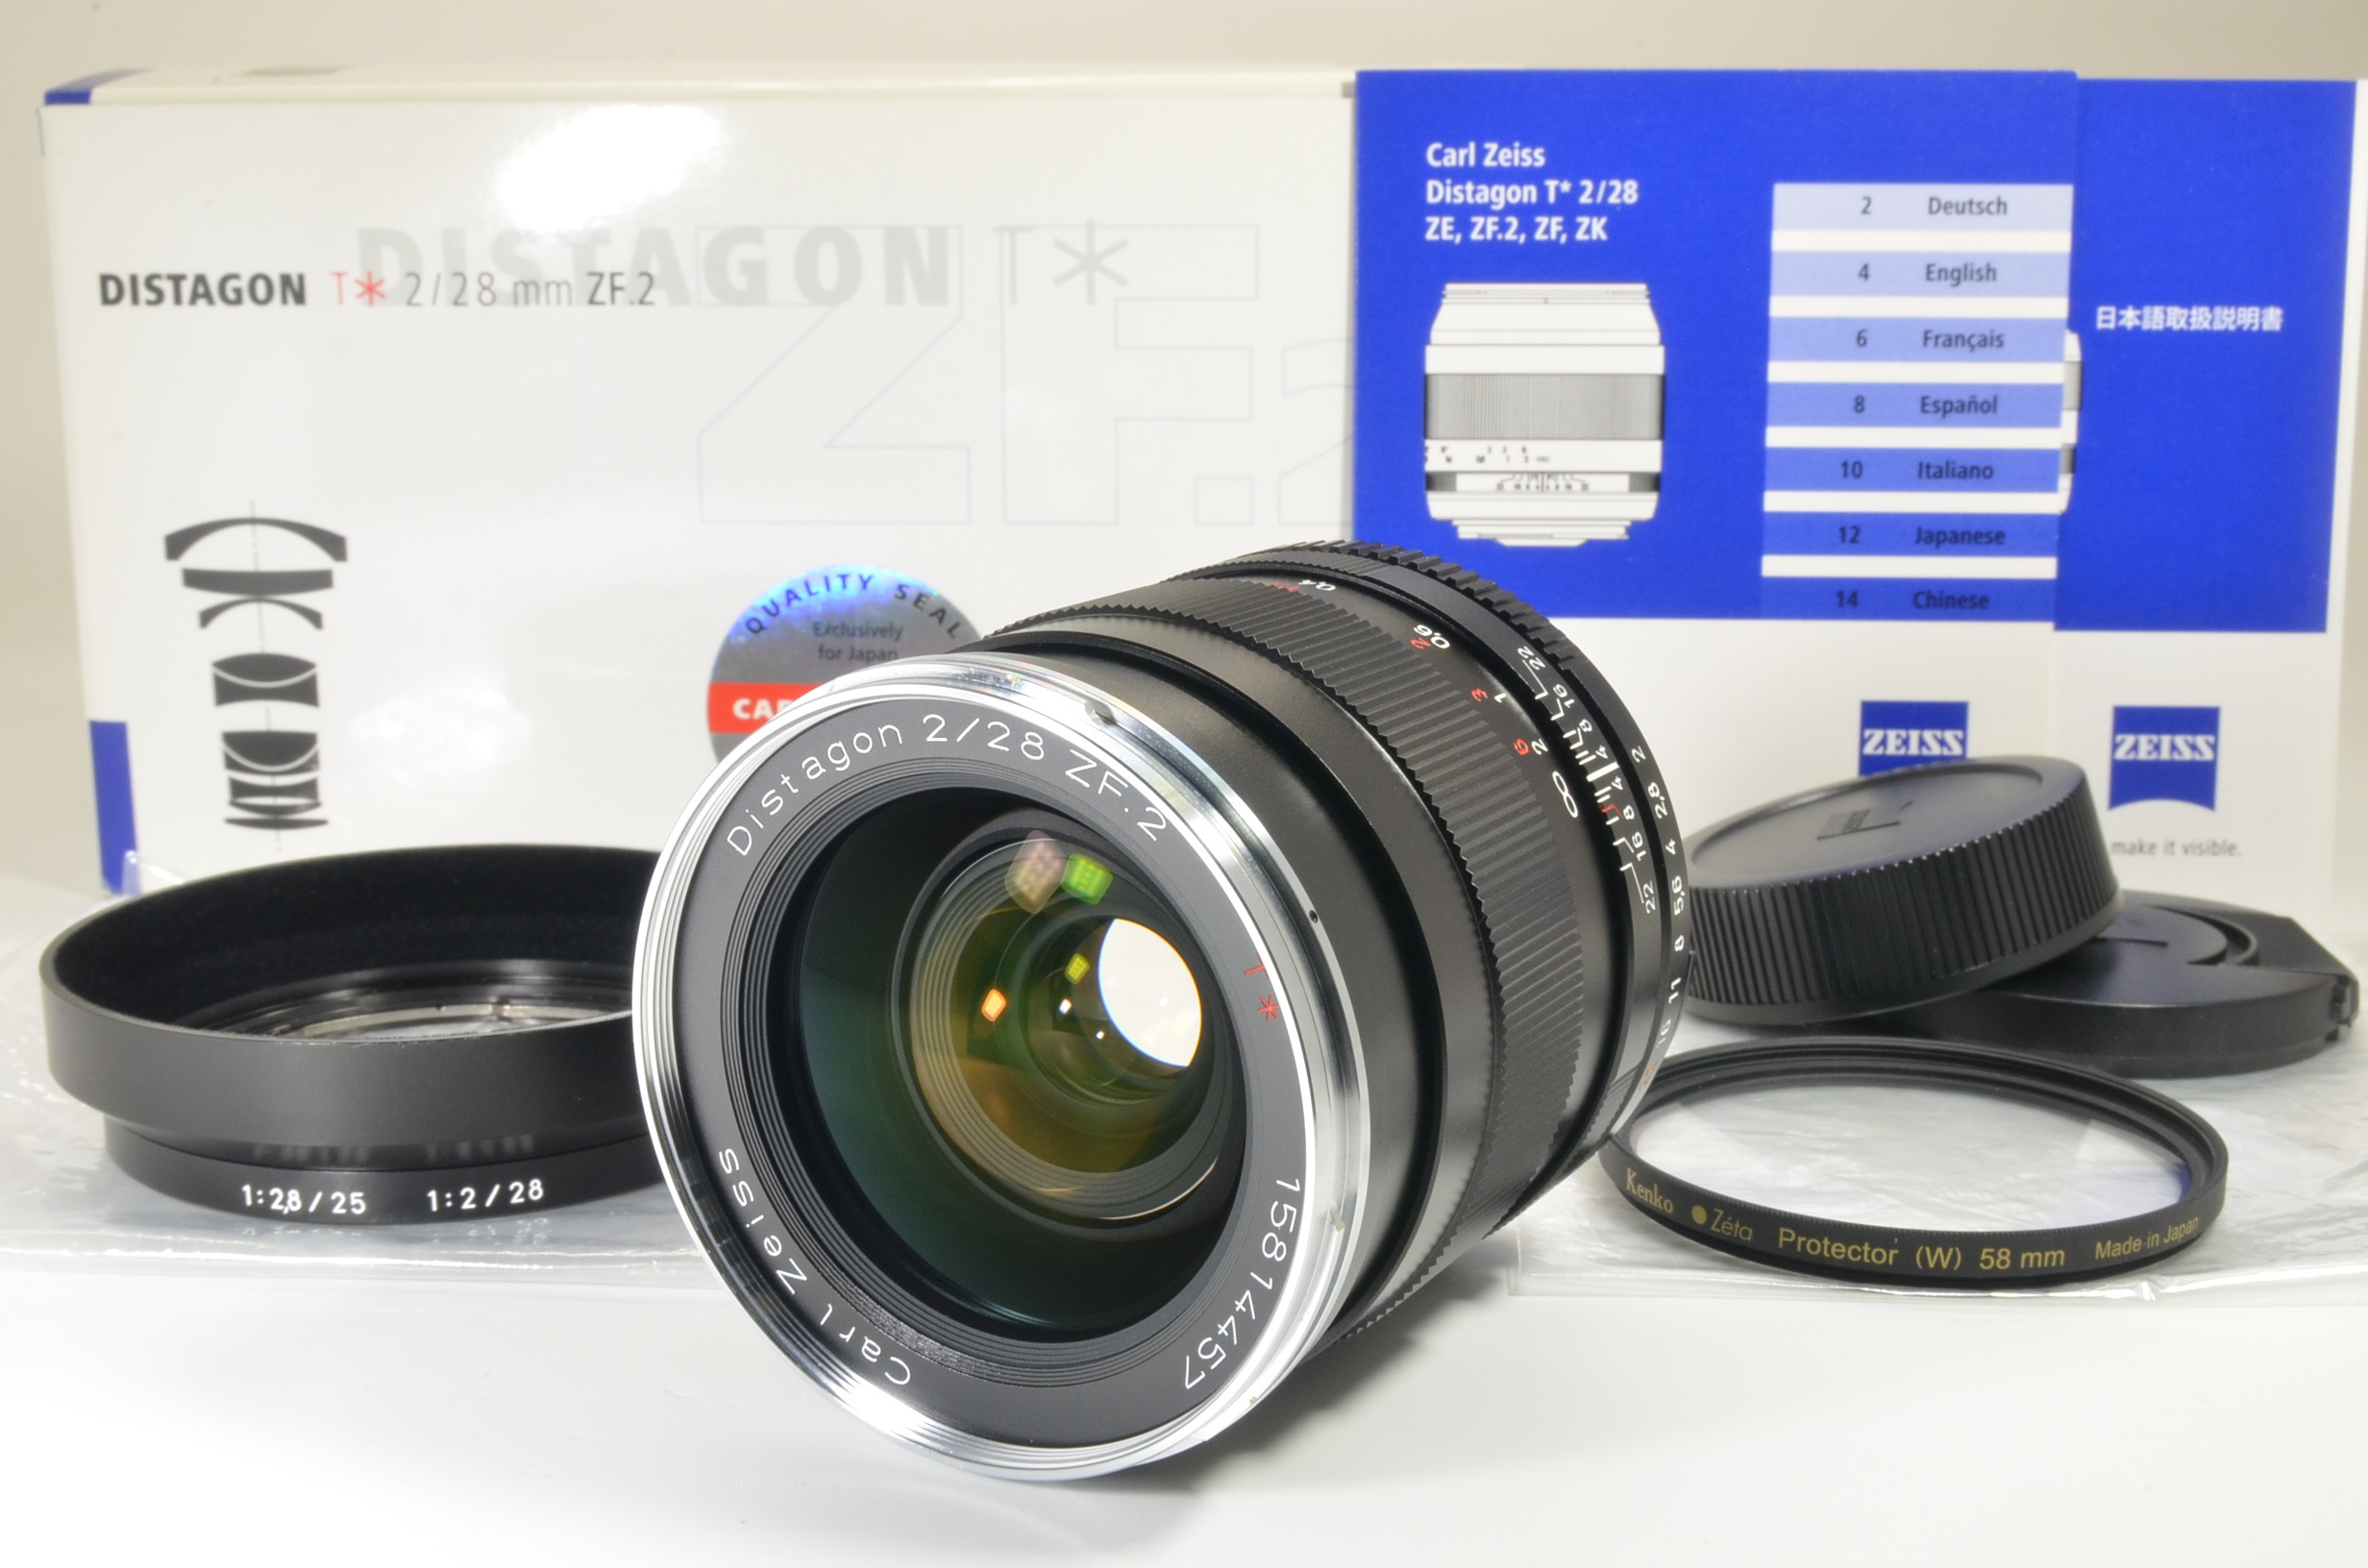 carl zeiss distagon t* 28mm f2 zf.2 lens for nikon f mount